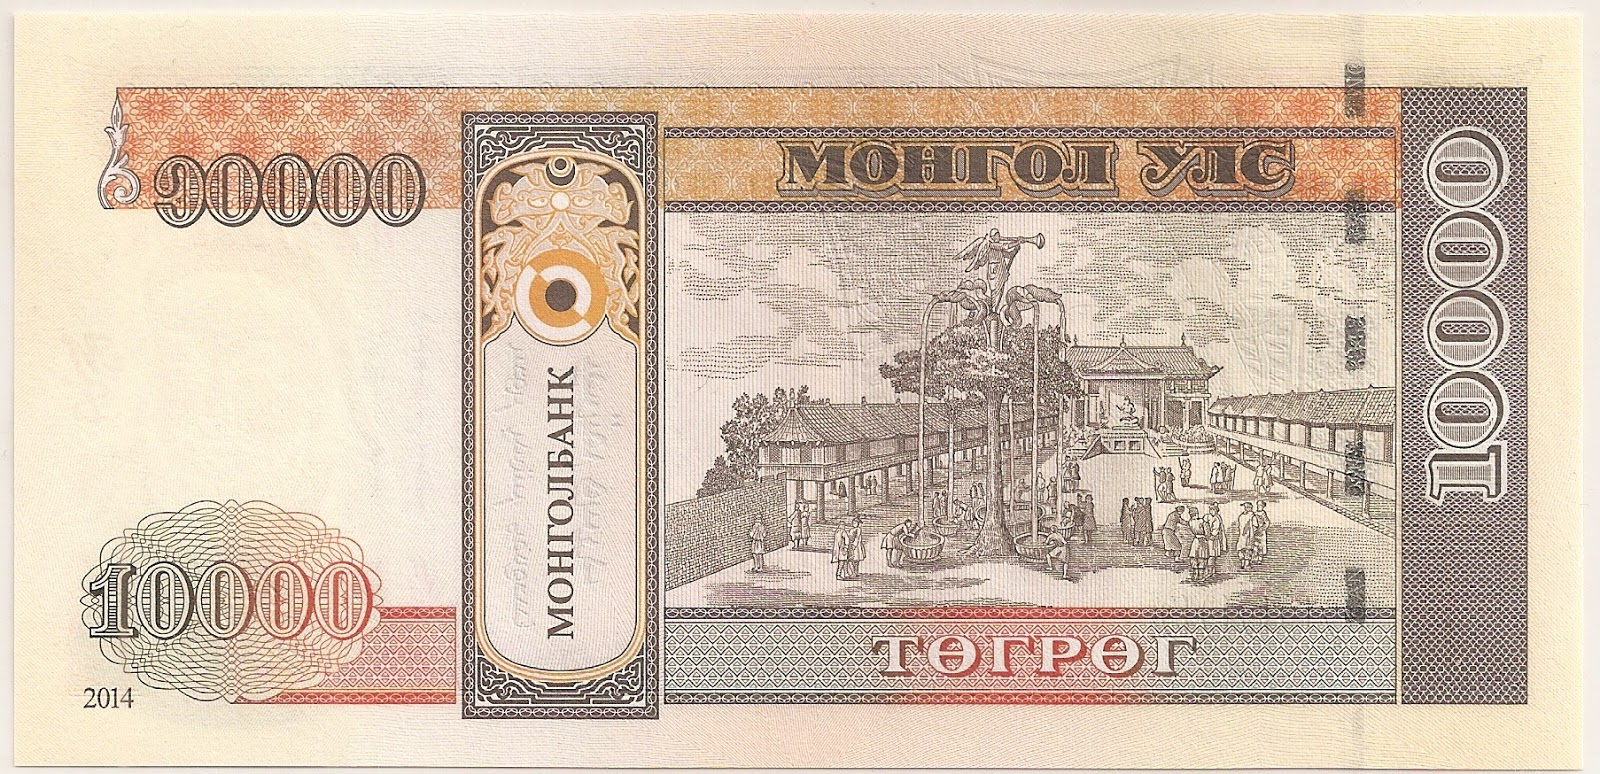 Coins and more 322 currency coinage of mongolia togrog or an image of the back of a 10000 togrog banknote showing the drinking fountain at genghis khans court the year of issue is 2014 on the bottom left biocorpaavc Images